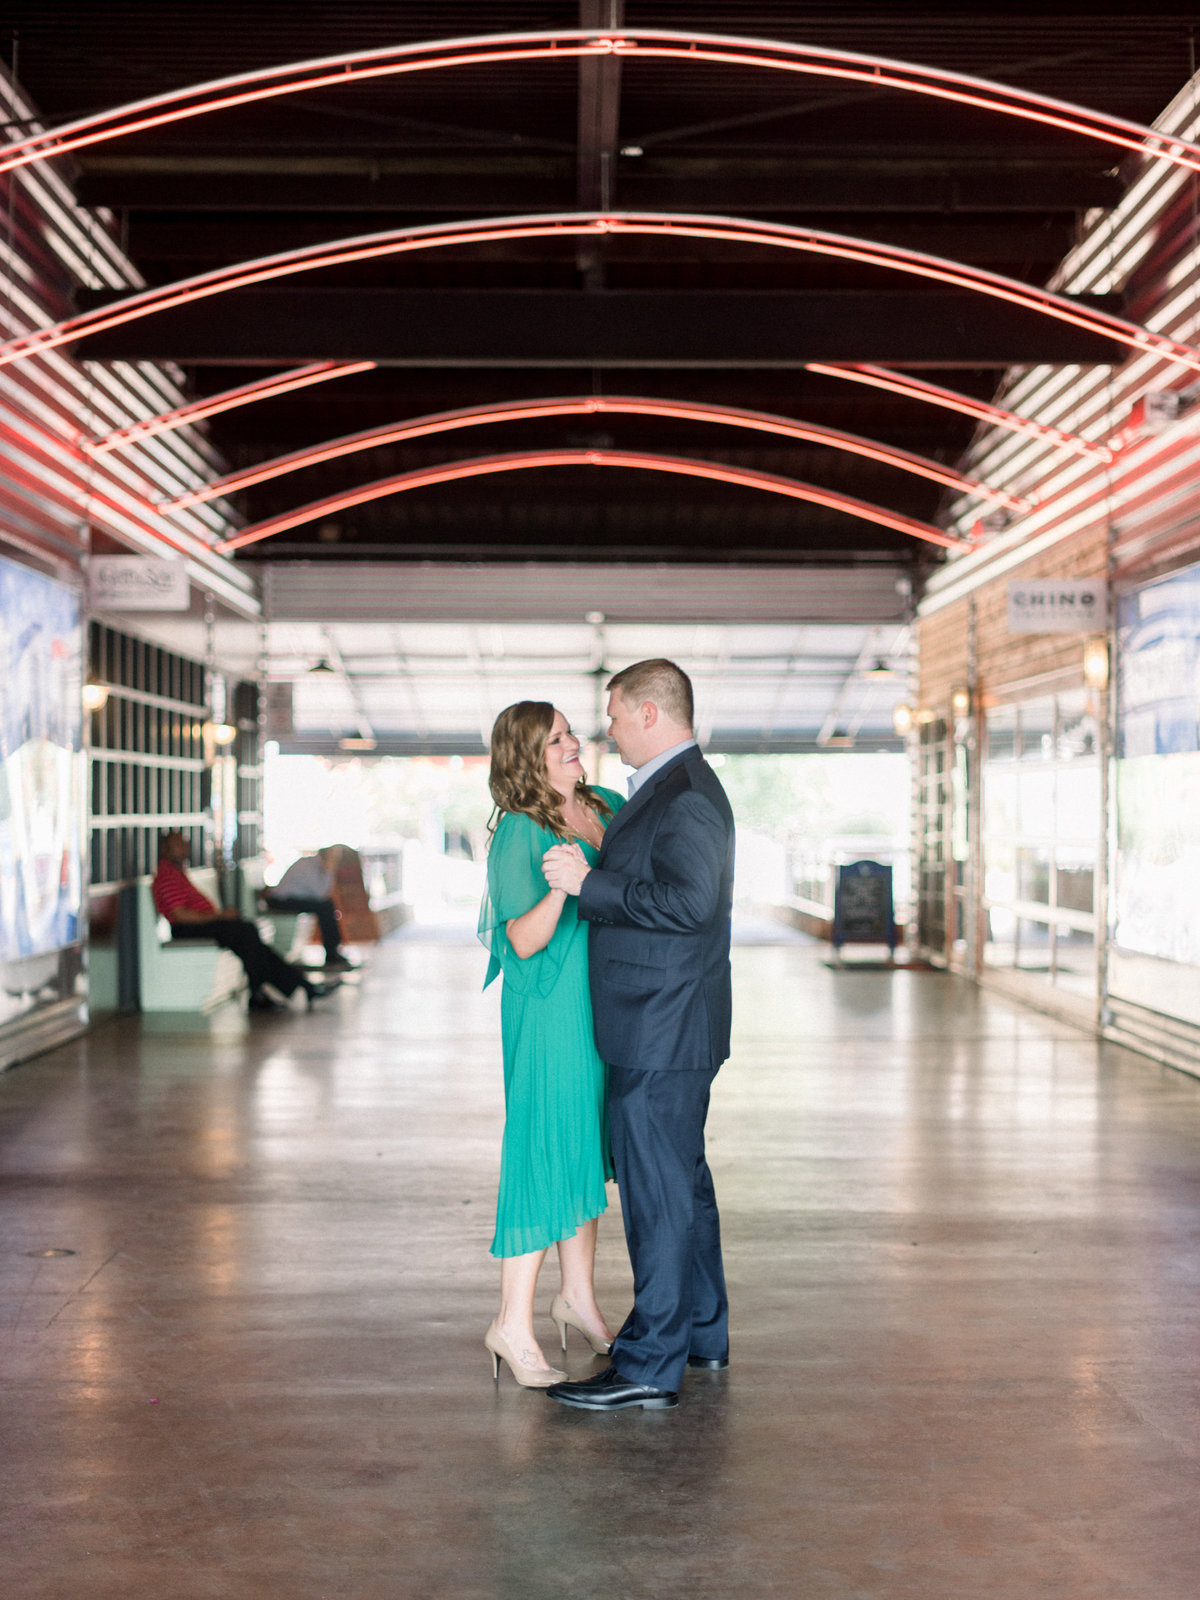 Courtney Hanson Photography - Downtown Dallas Engagement Session-7075